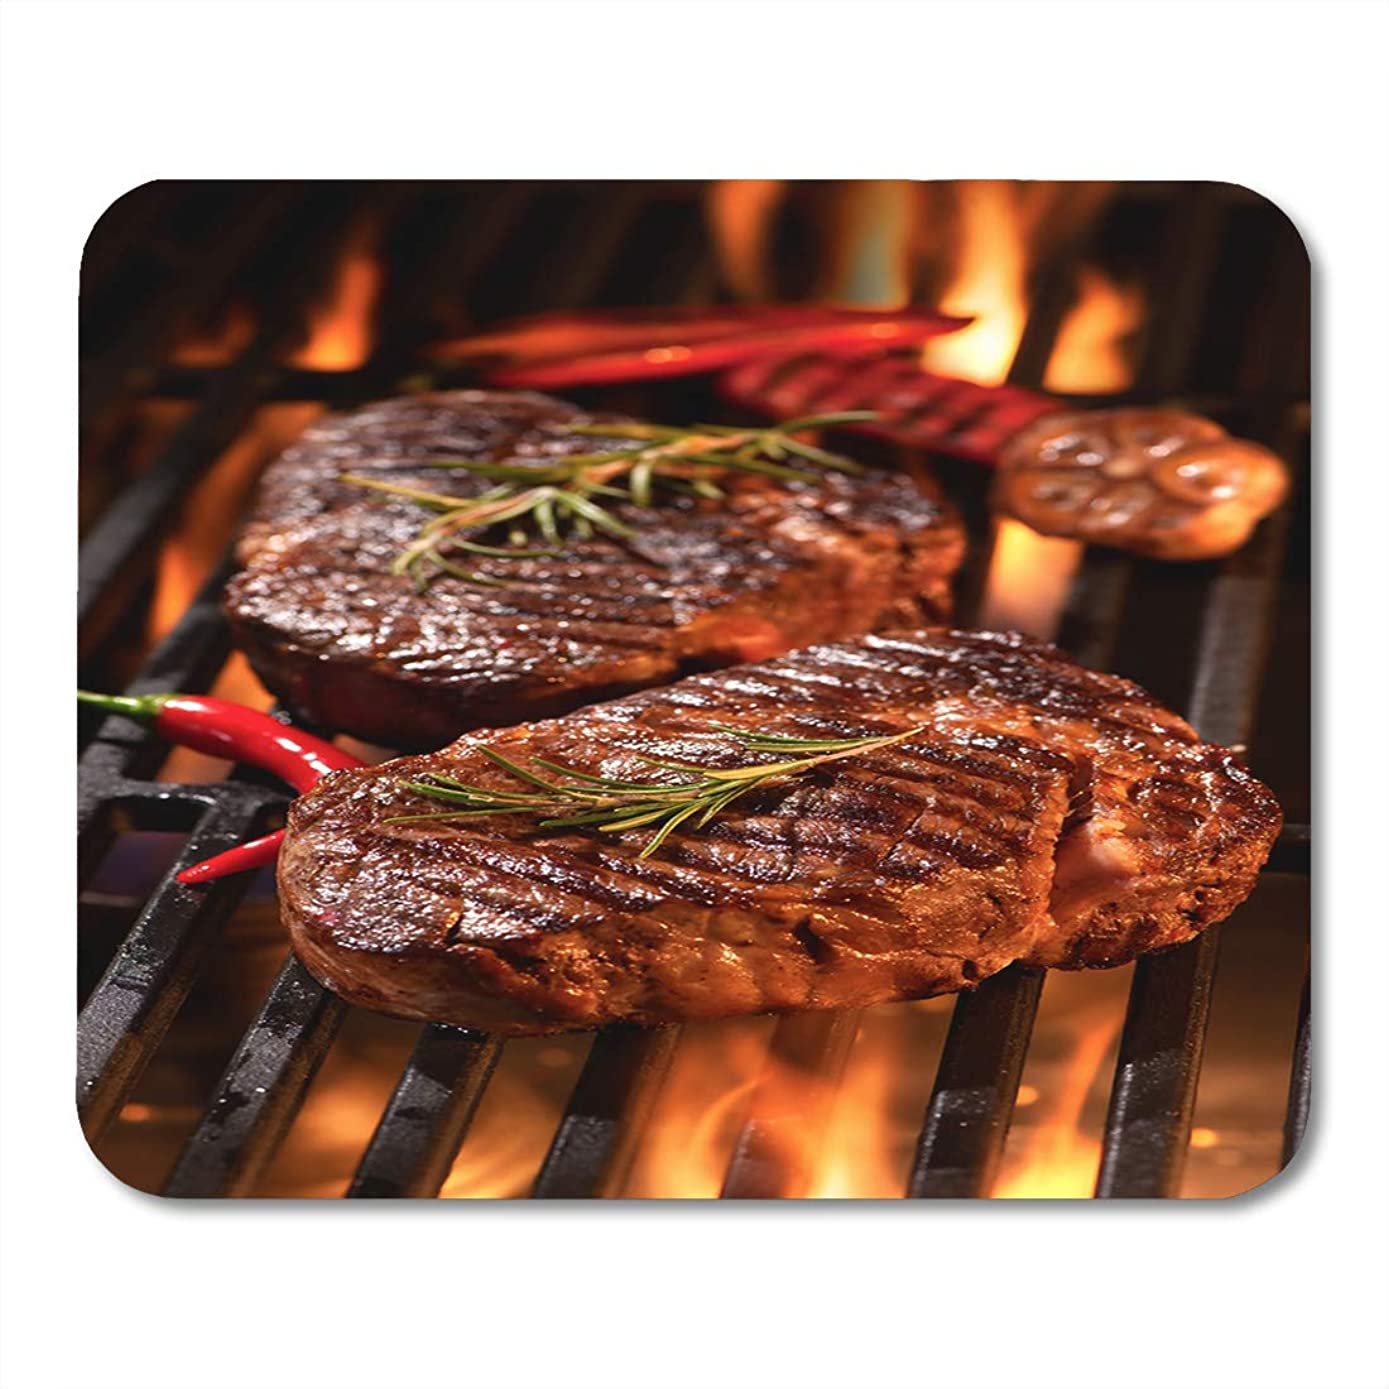 Semtomn Mouse Pad Red Meat Beef Steaks Grill Flames Barbecue BBQ Tenderloin Mousepad 9.8